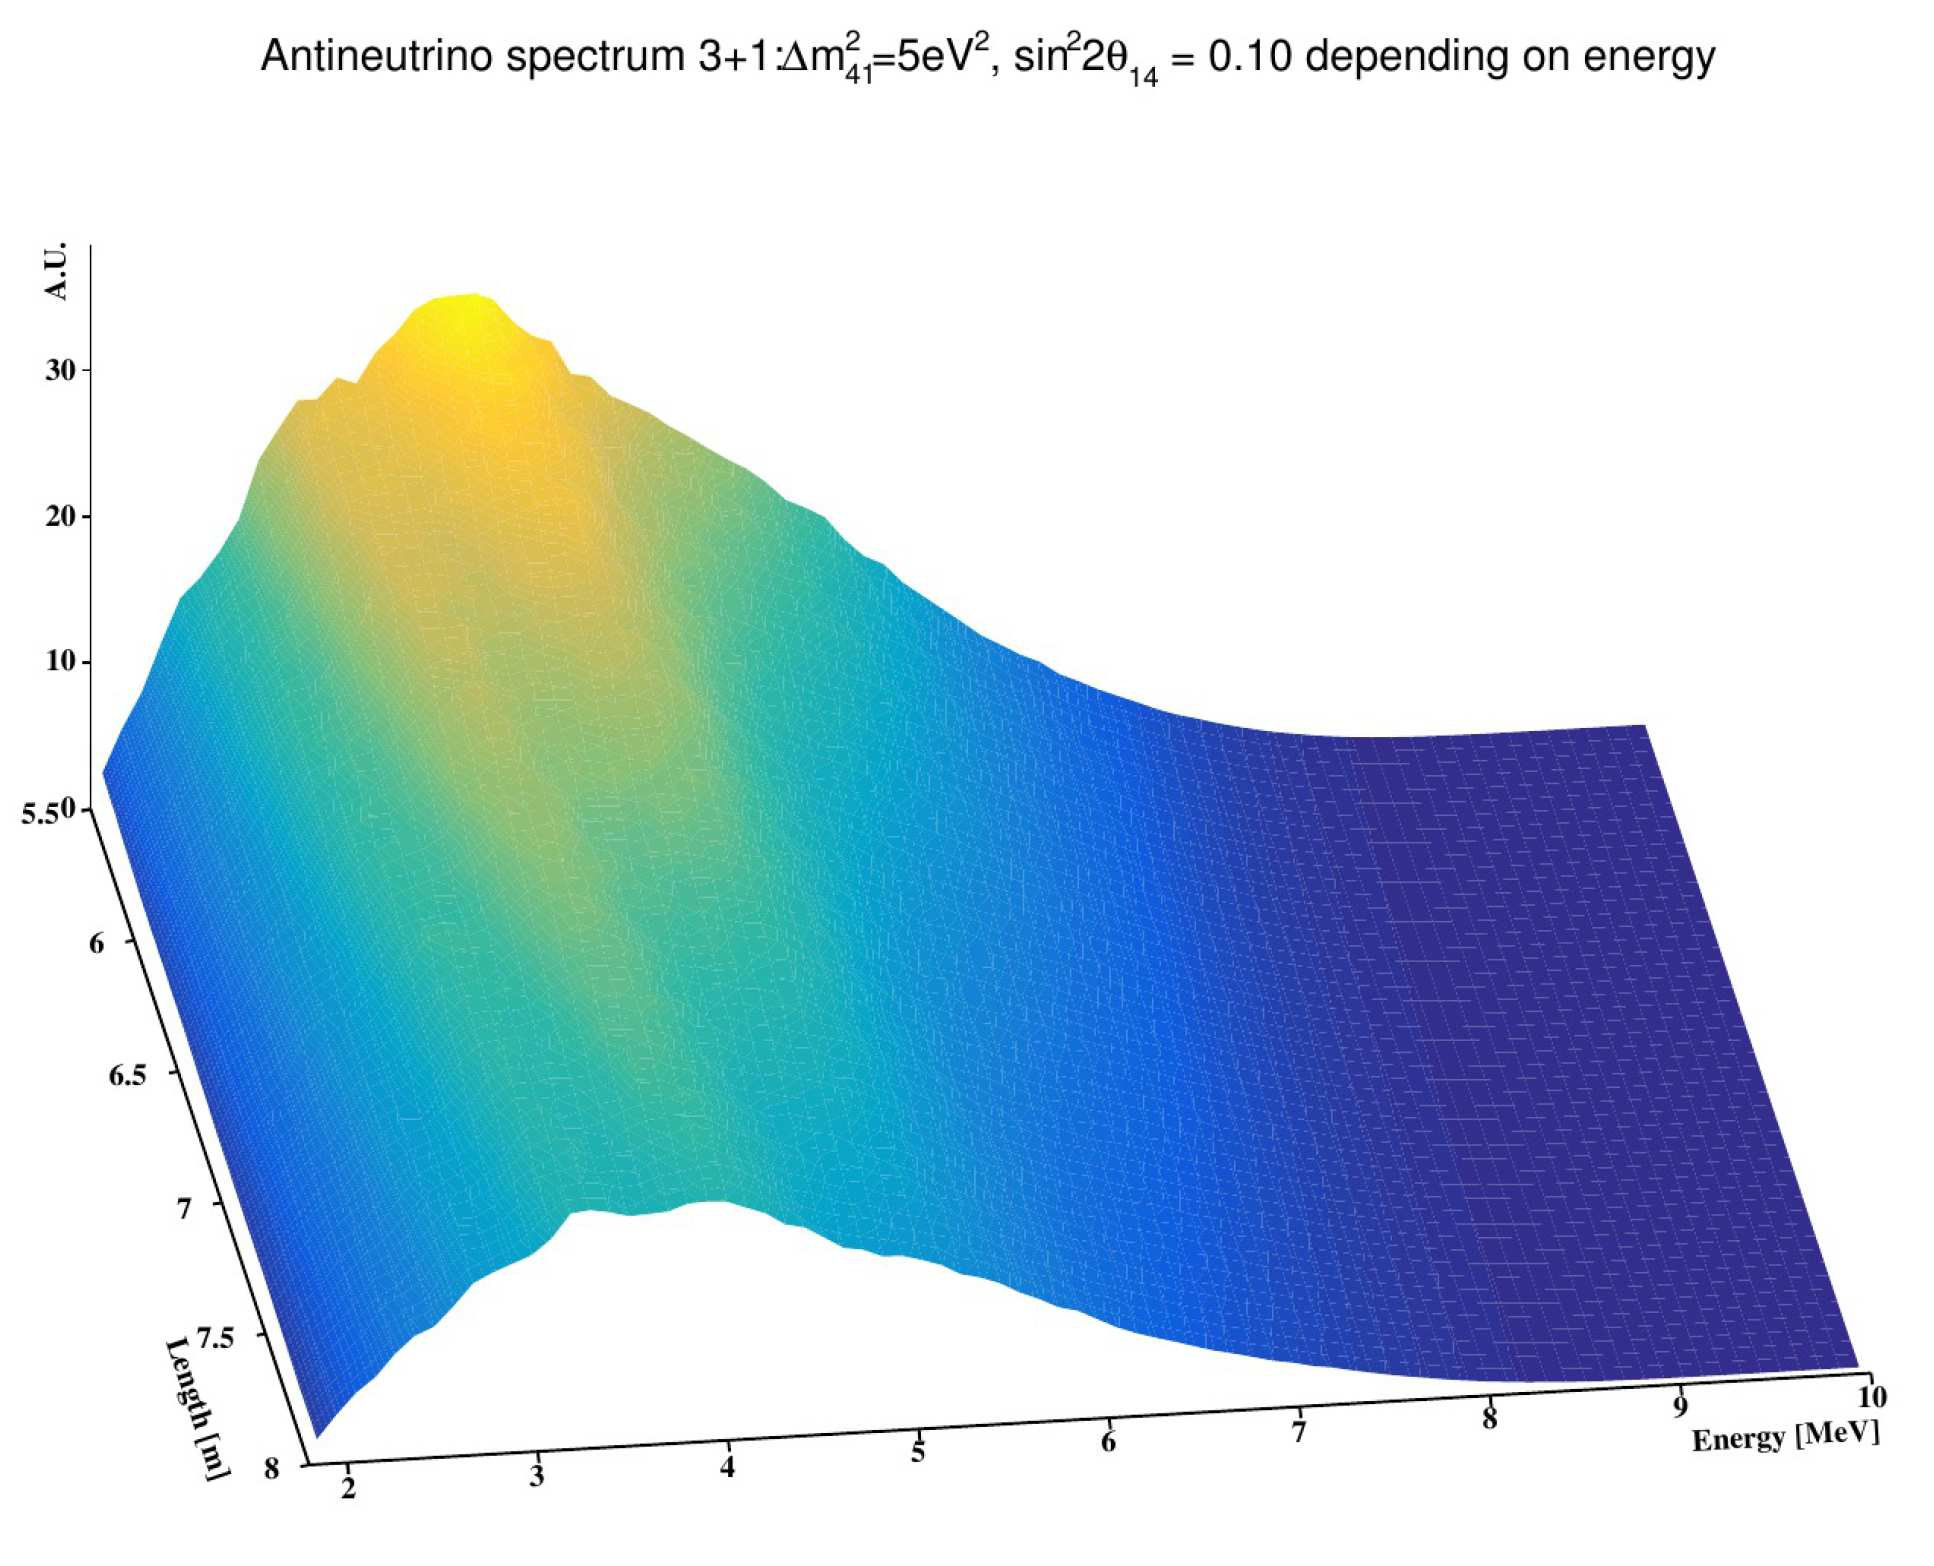 Antineutrino spectrum